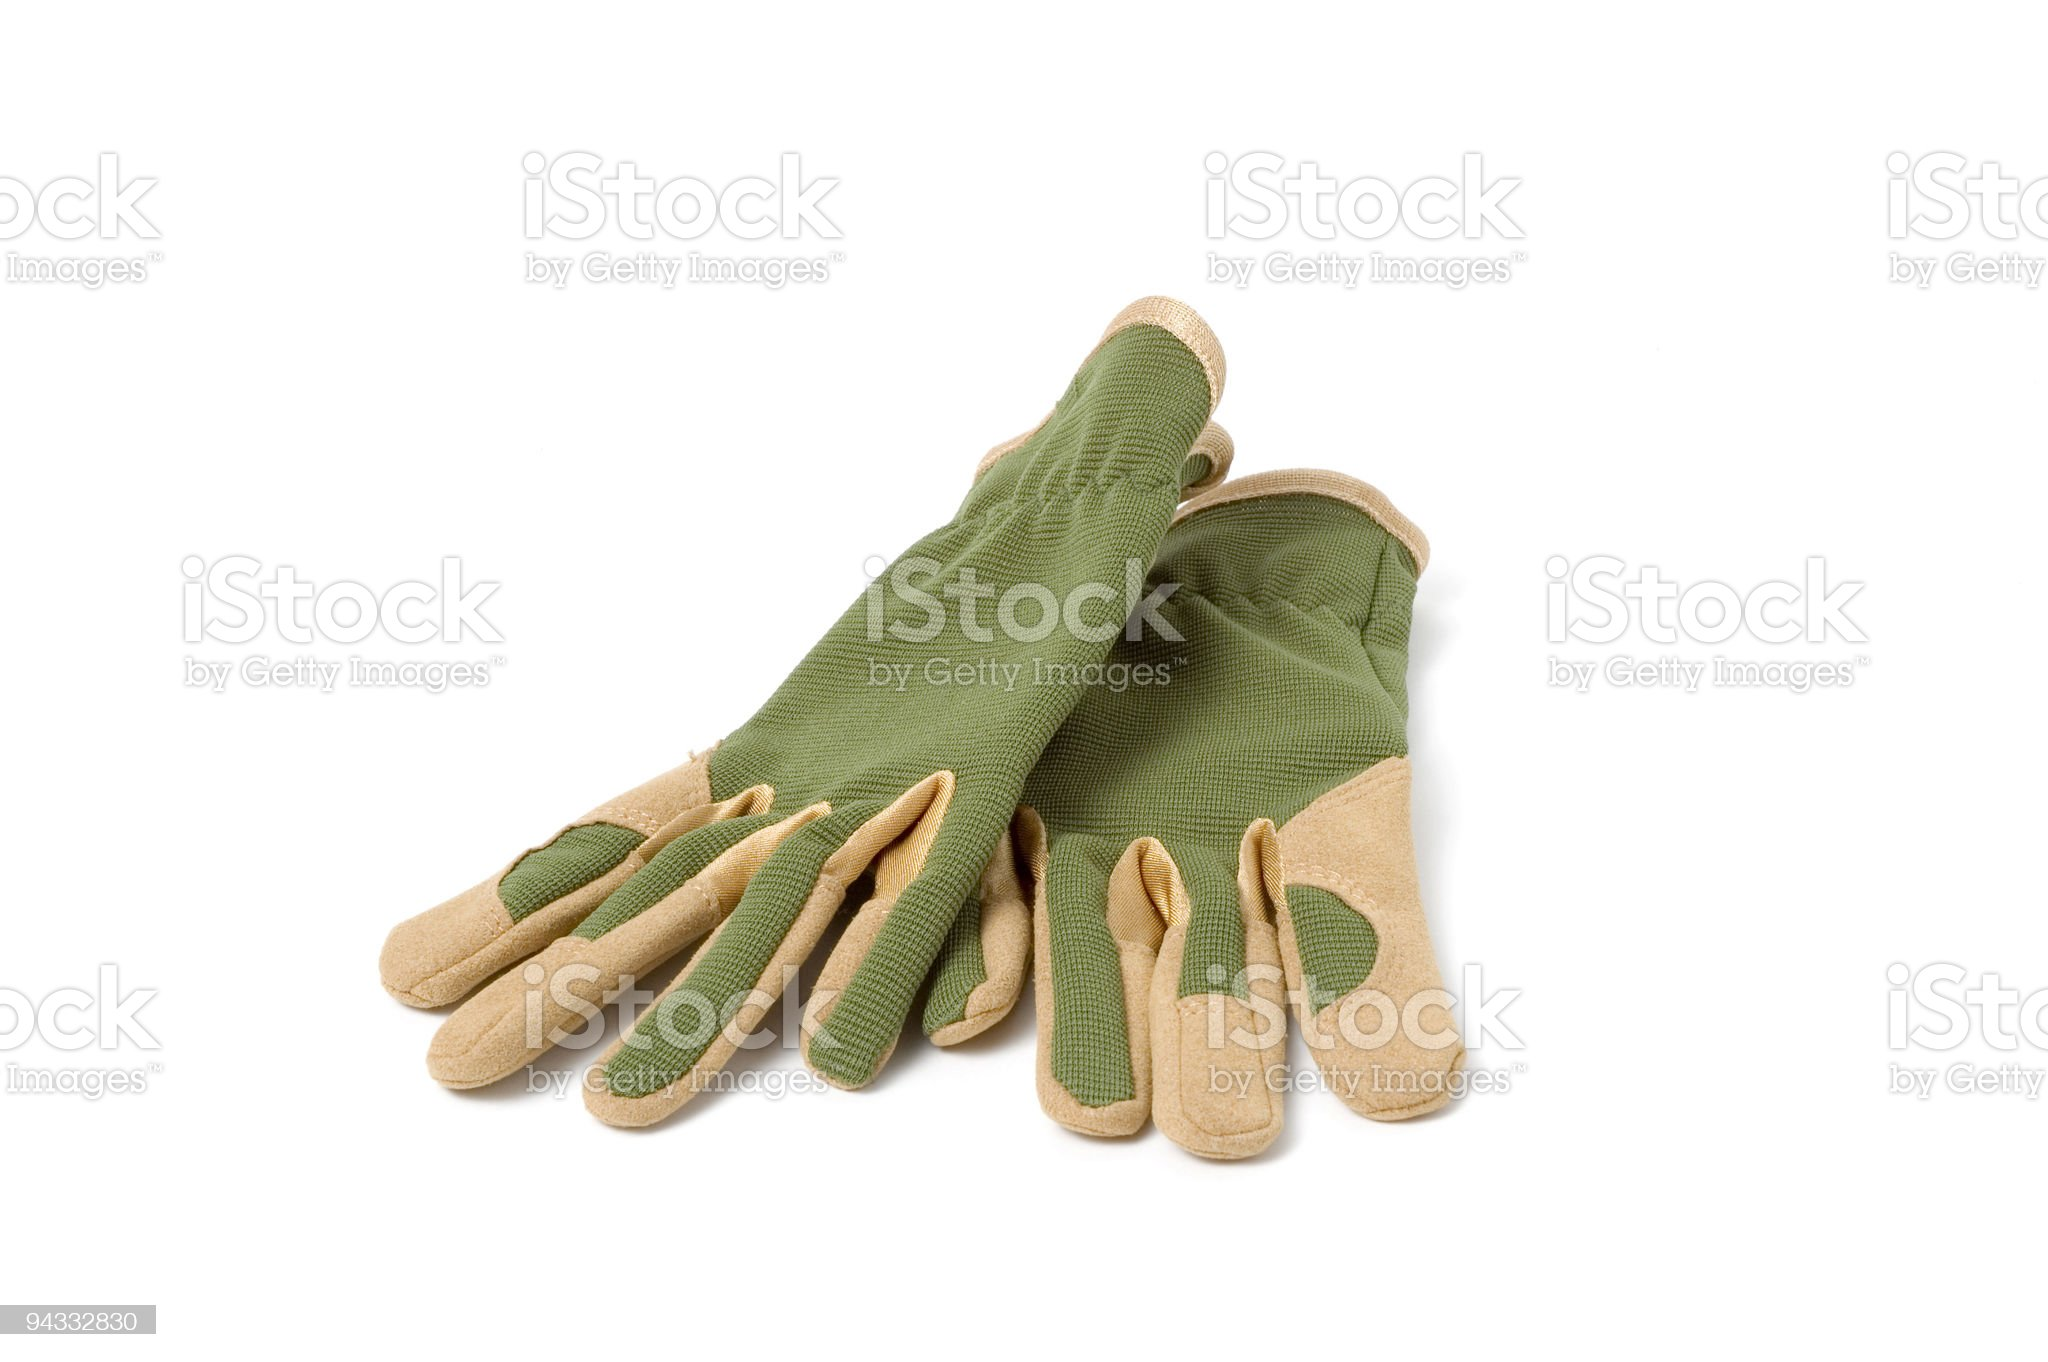 Close-up of green gardening gloves royalty-free stock photo